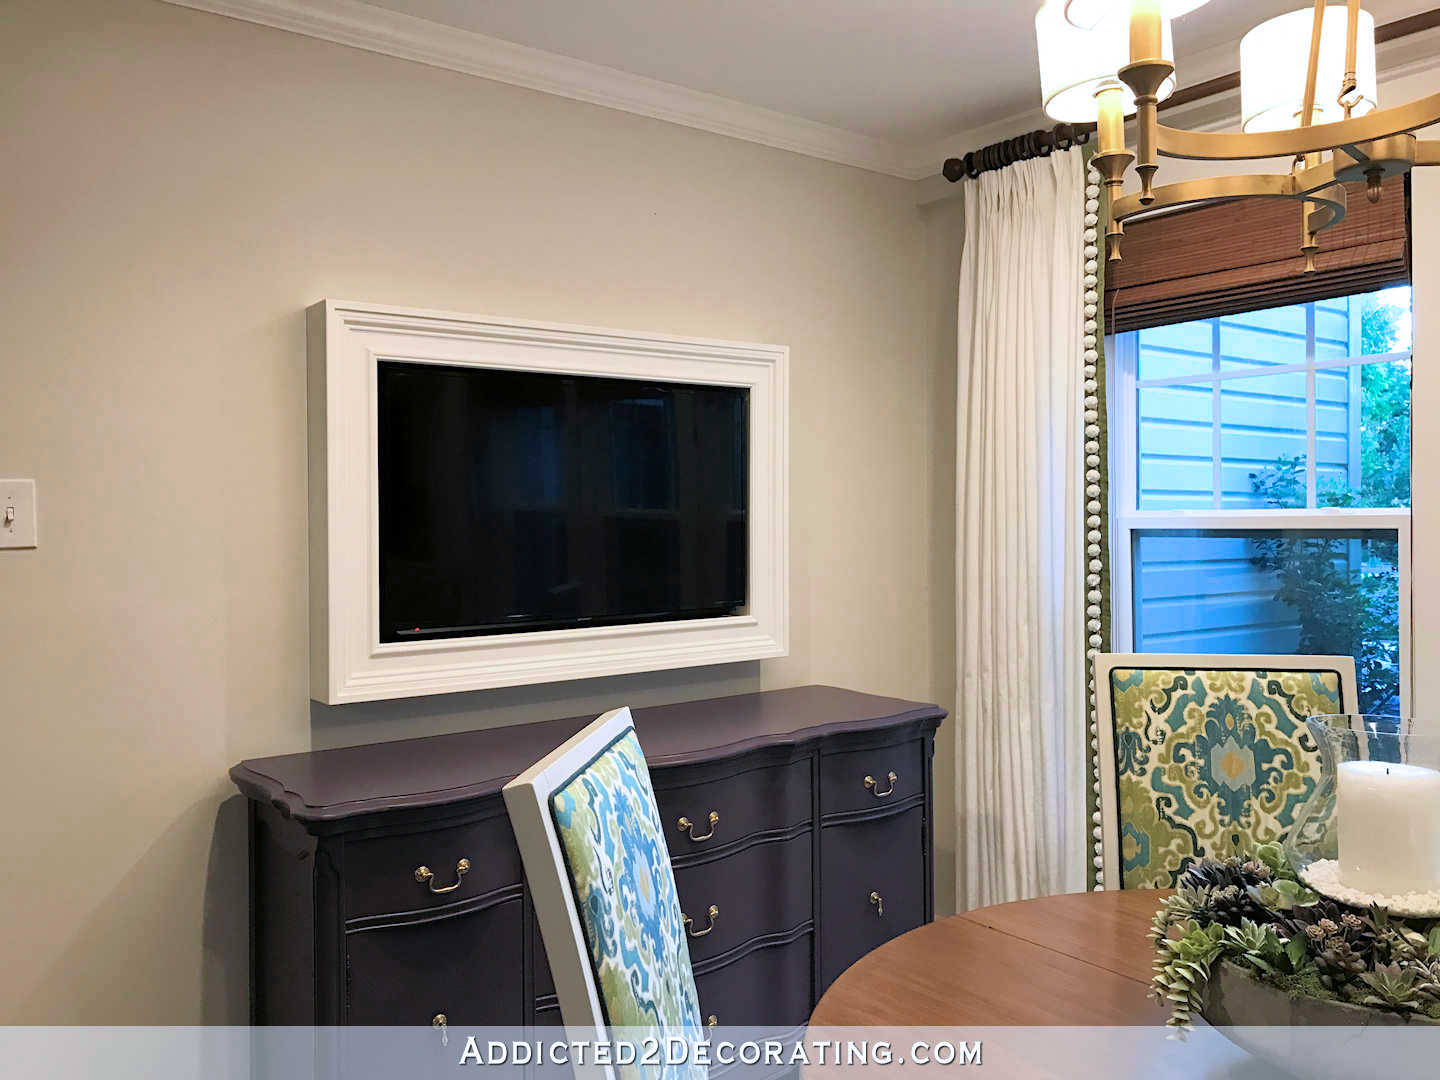 How To Put A Tv On A Wall Custom Diy Frame For Wall Mounted Tv Finished